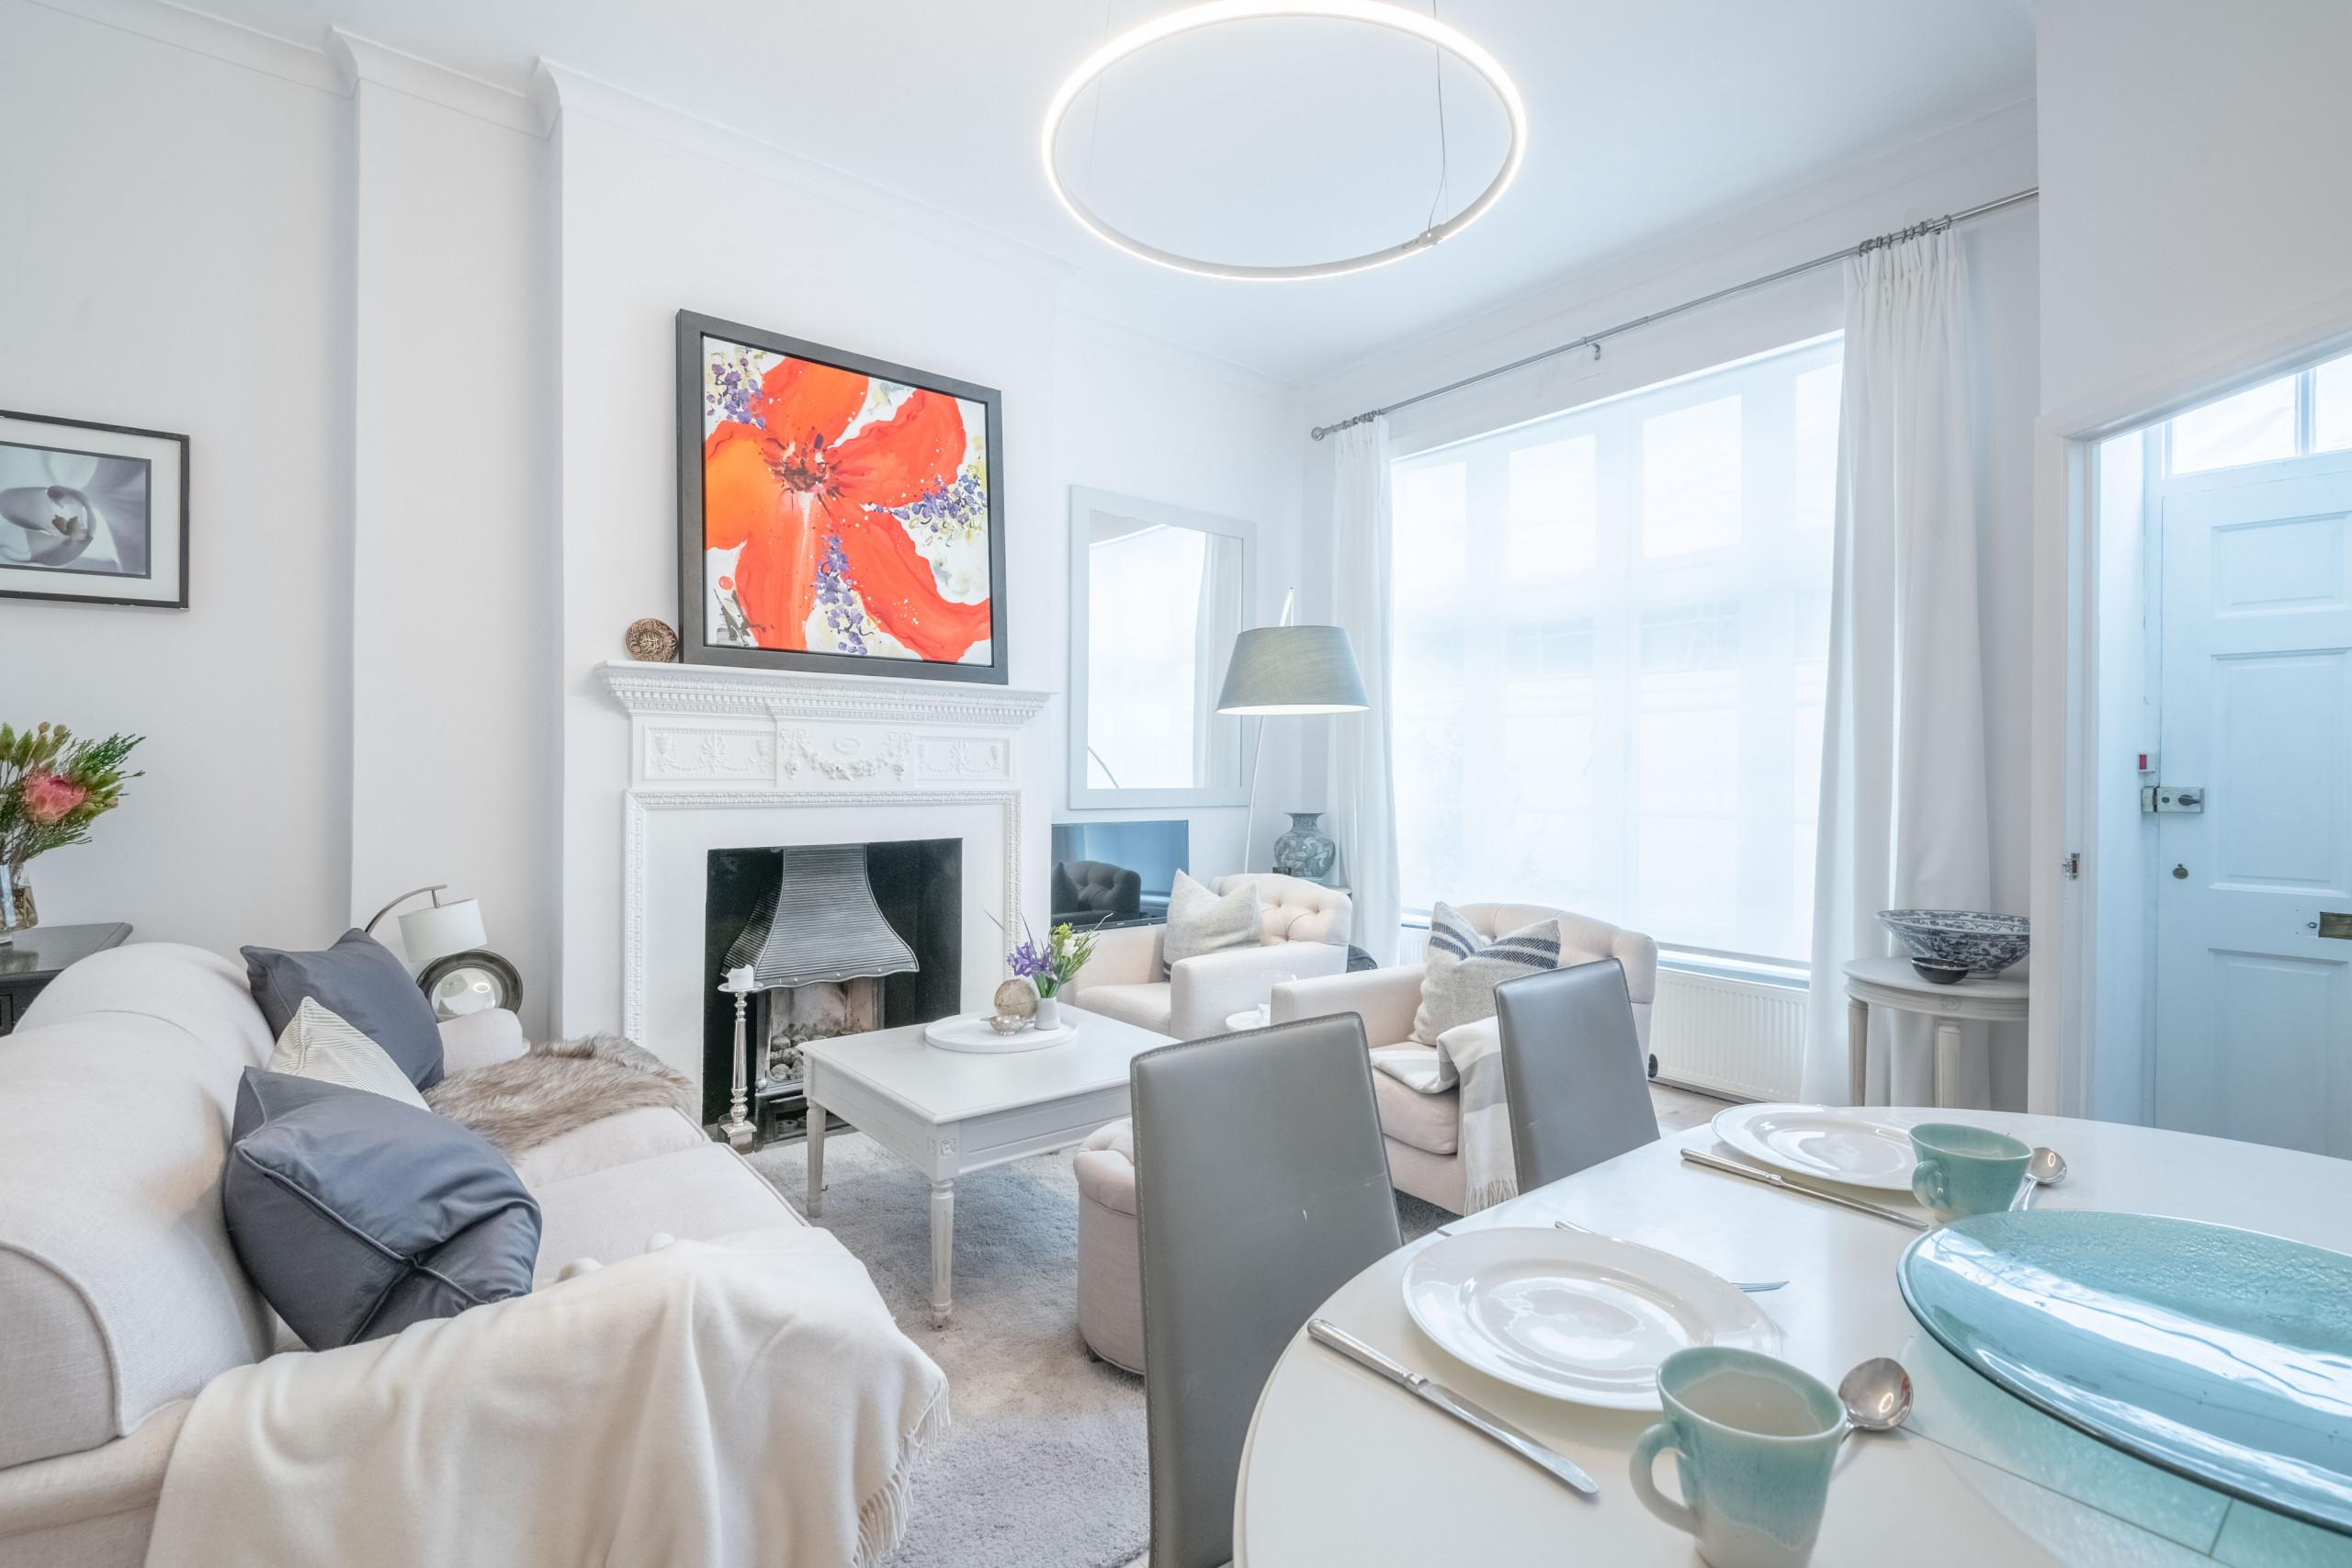 Property Image 1 - Stunning Central London Home near Hyde Park